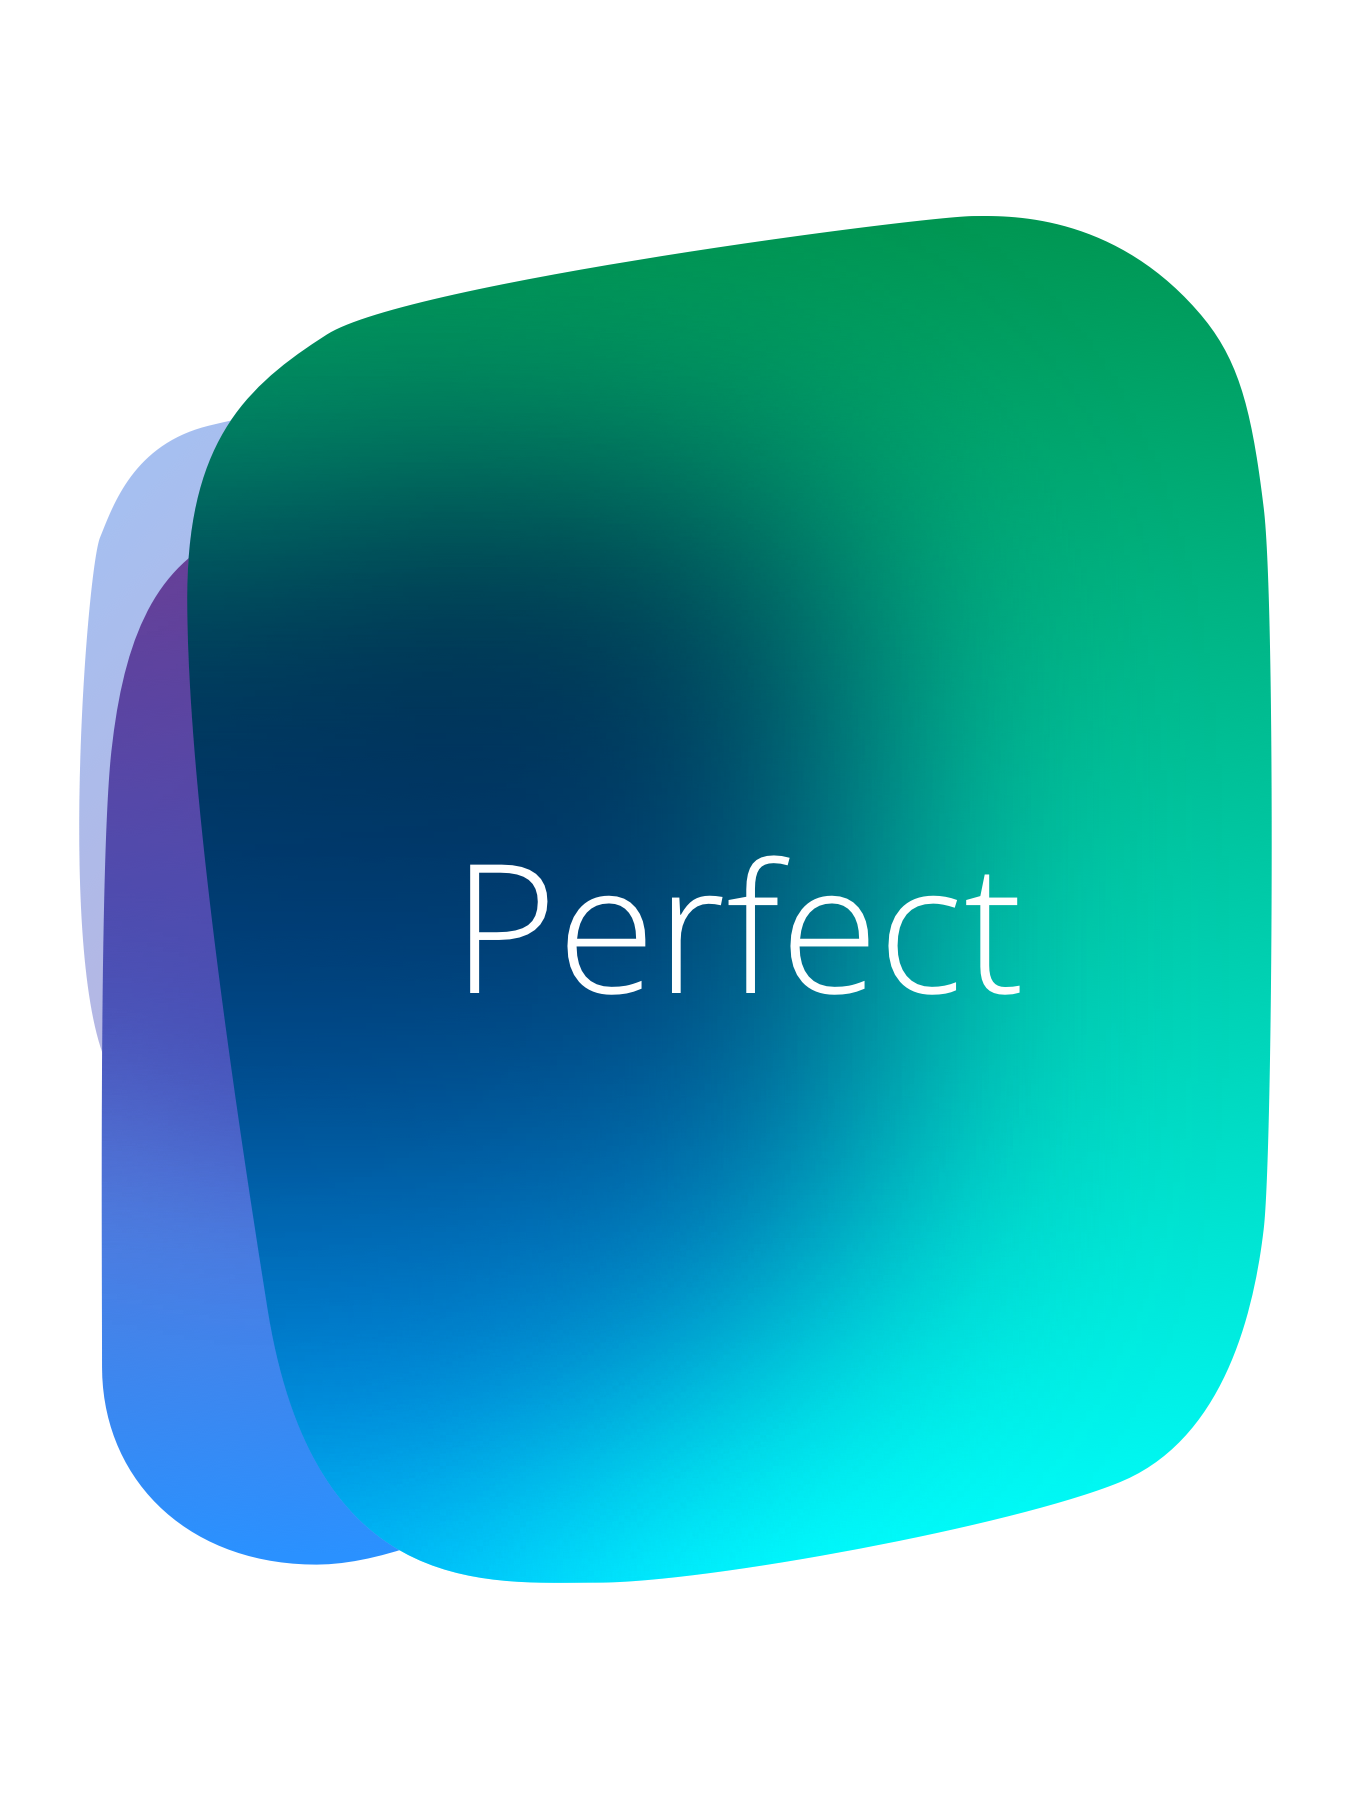 perfect-full_3x.png